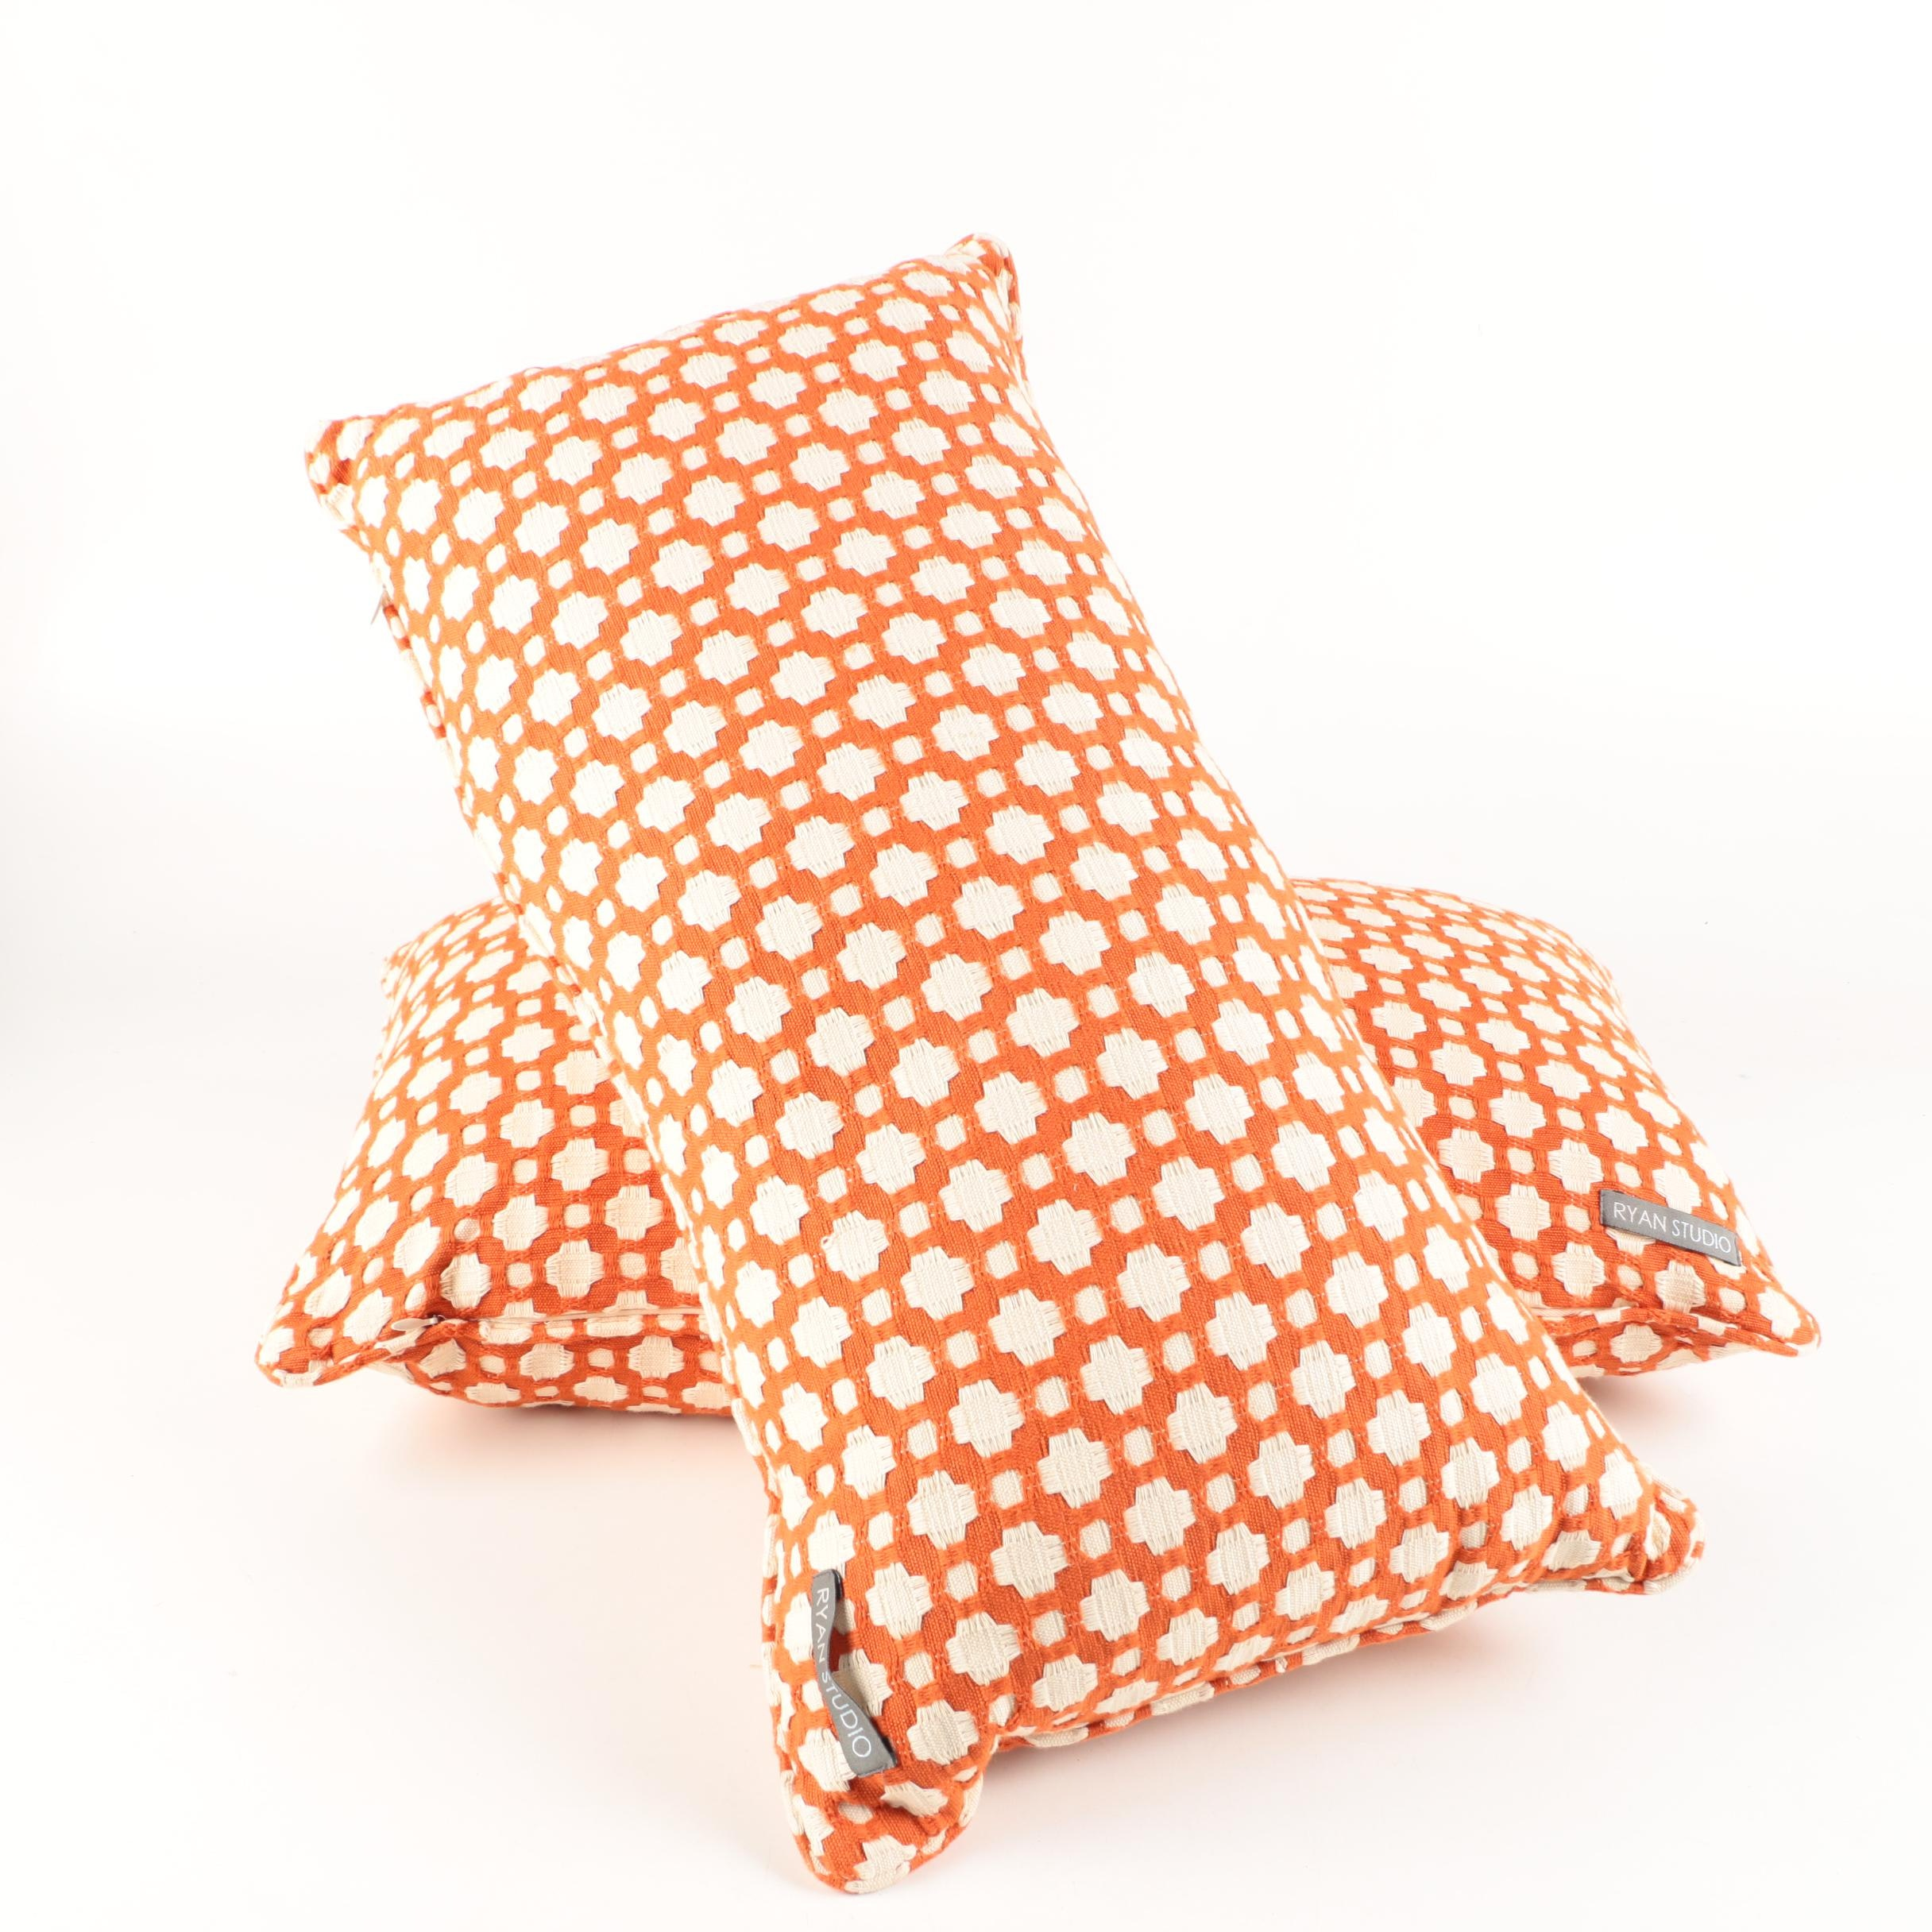 Pair of Patterned Accent Pillows